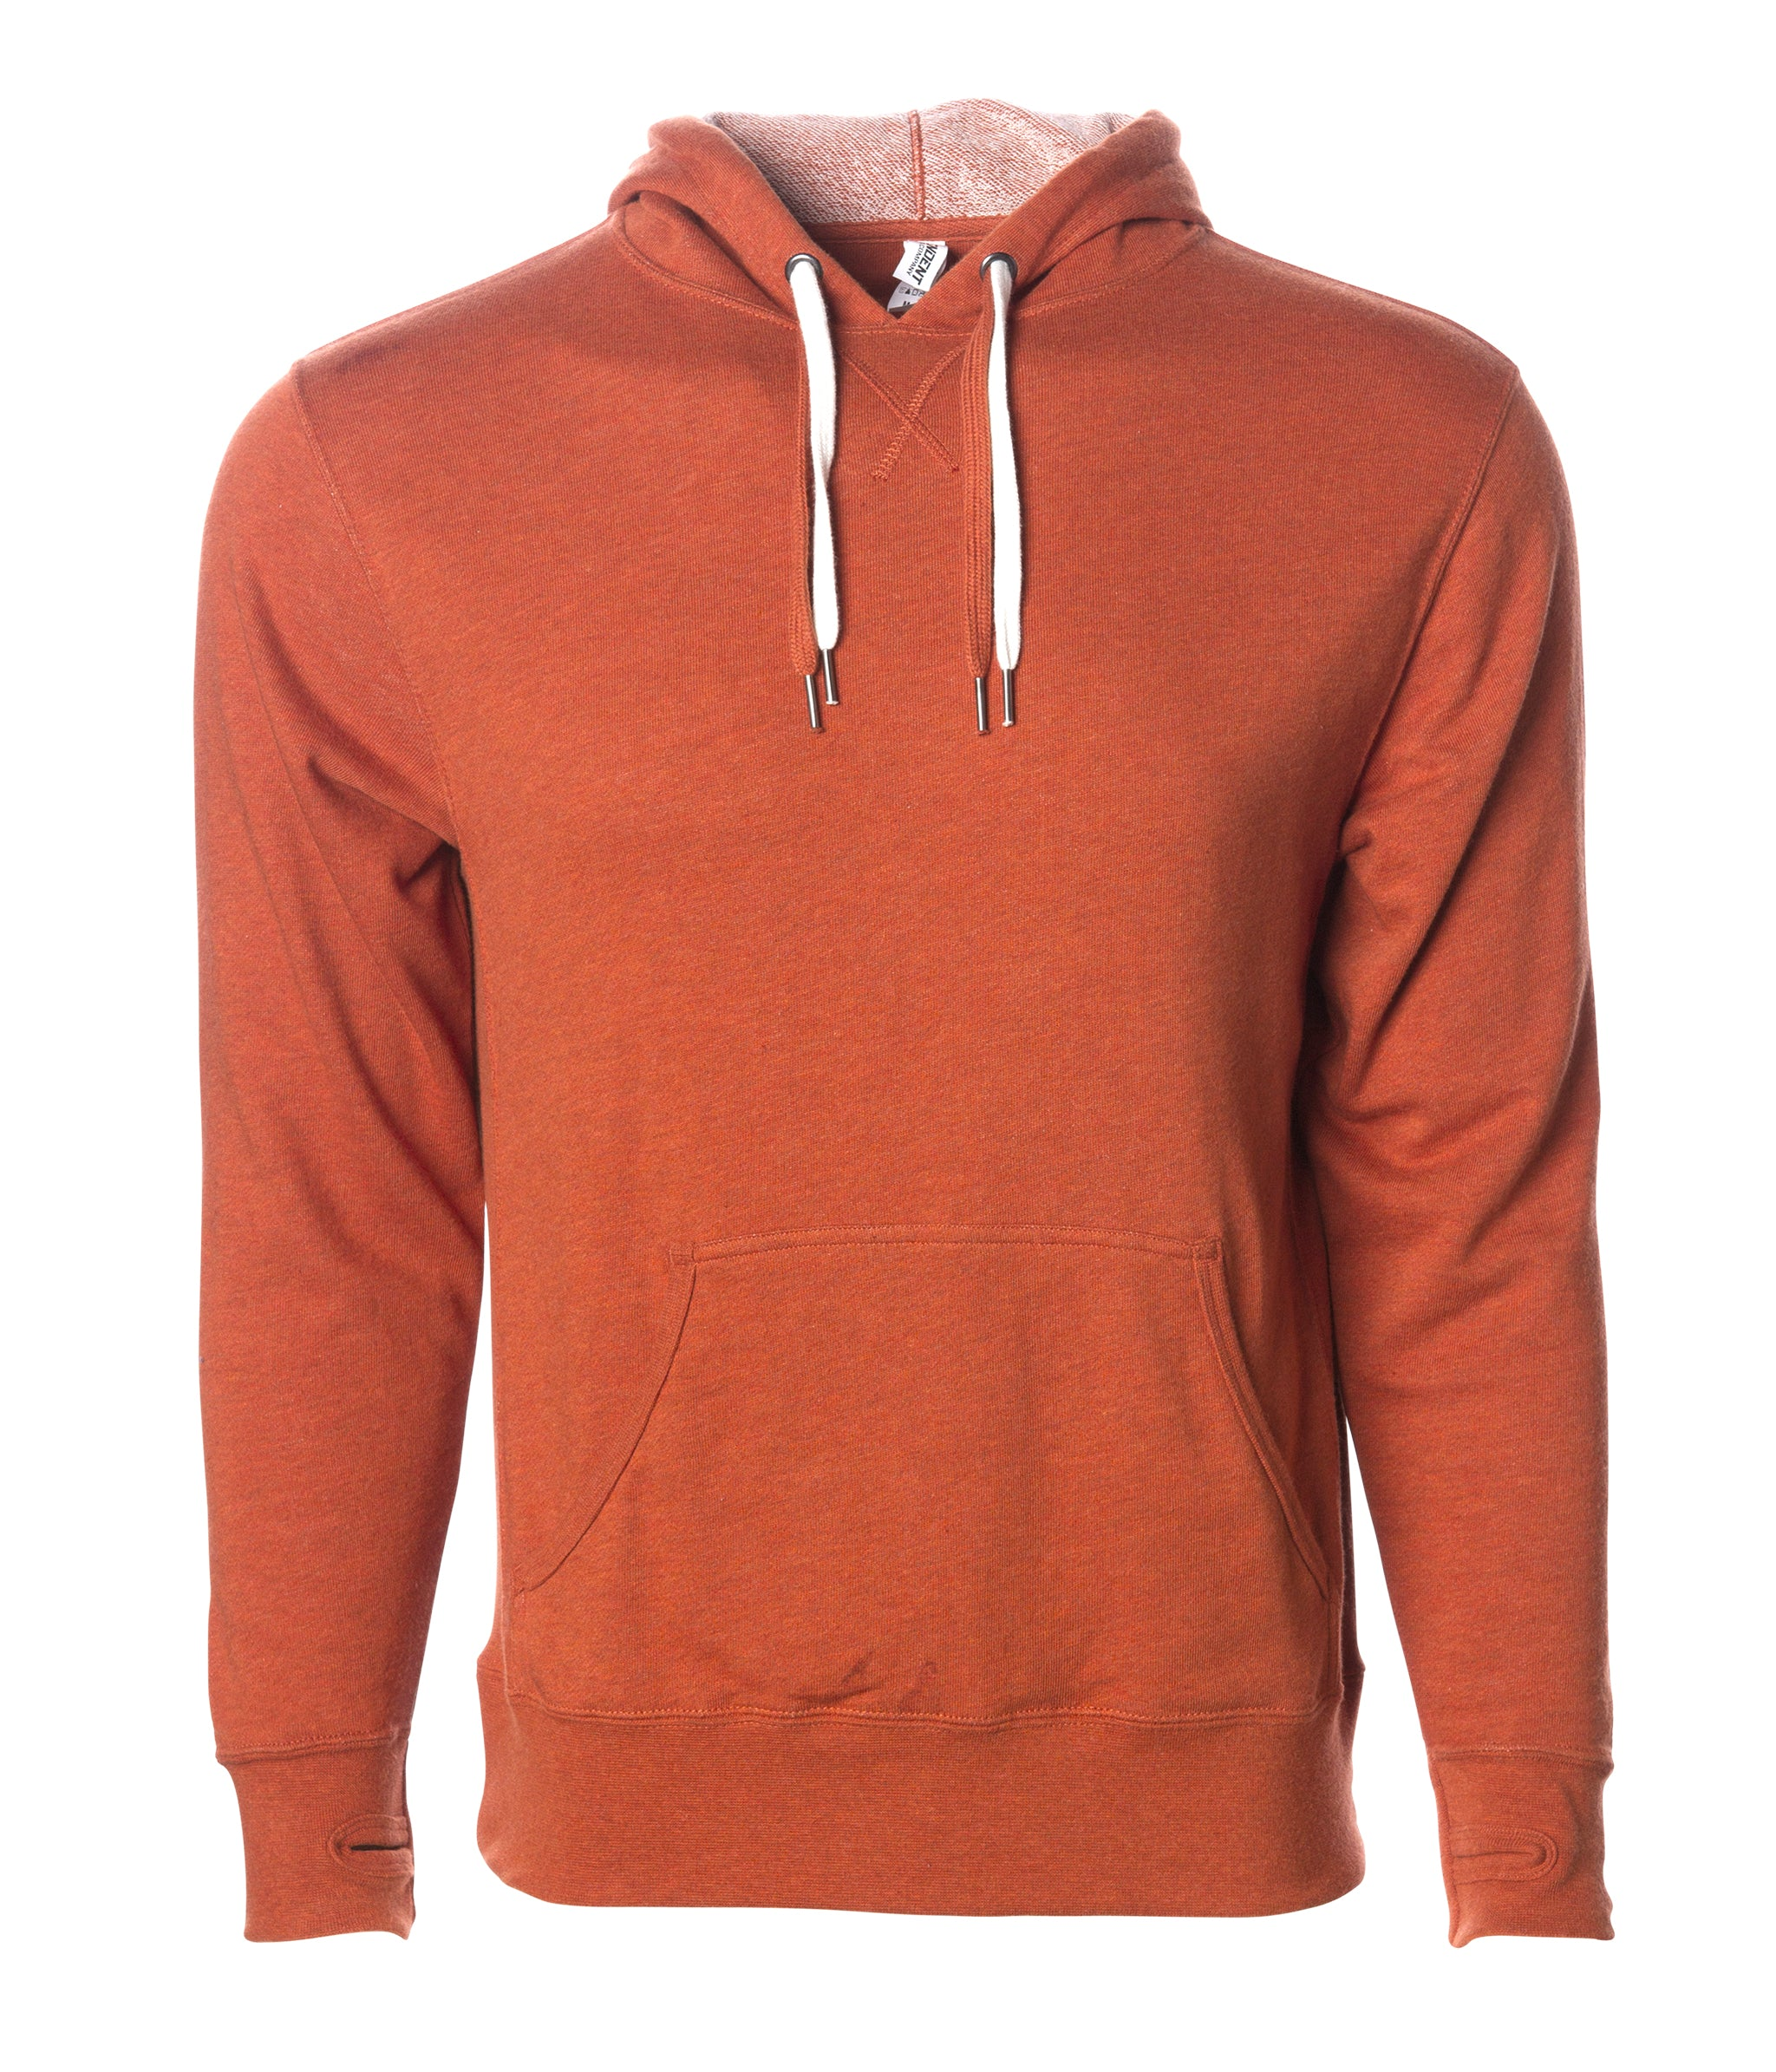 PME legend hooded Dry Terrybelle hoodie pour homme